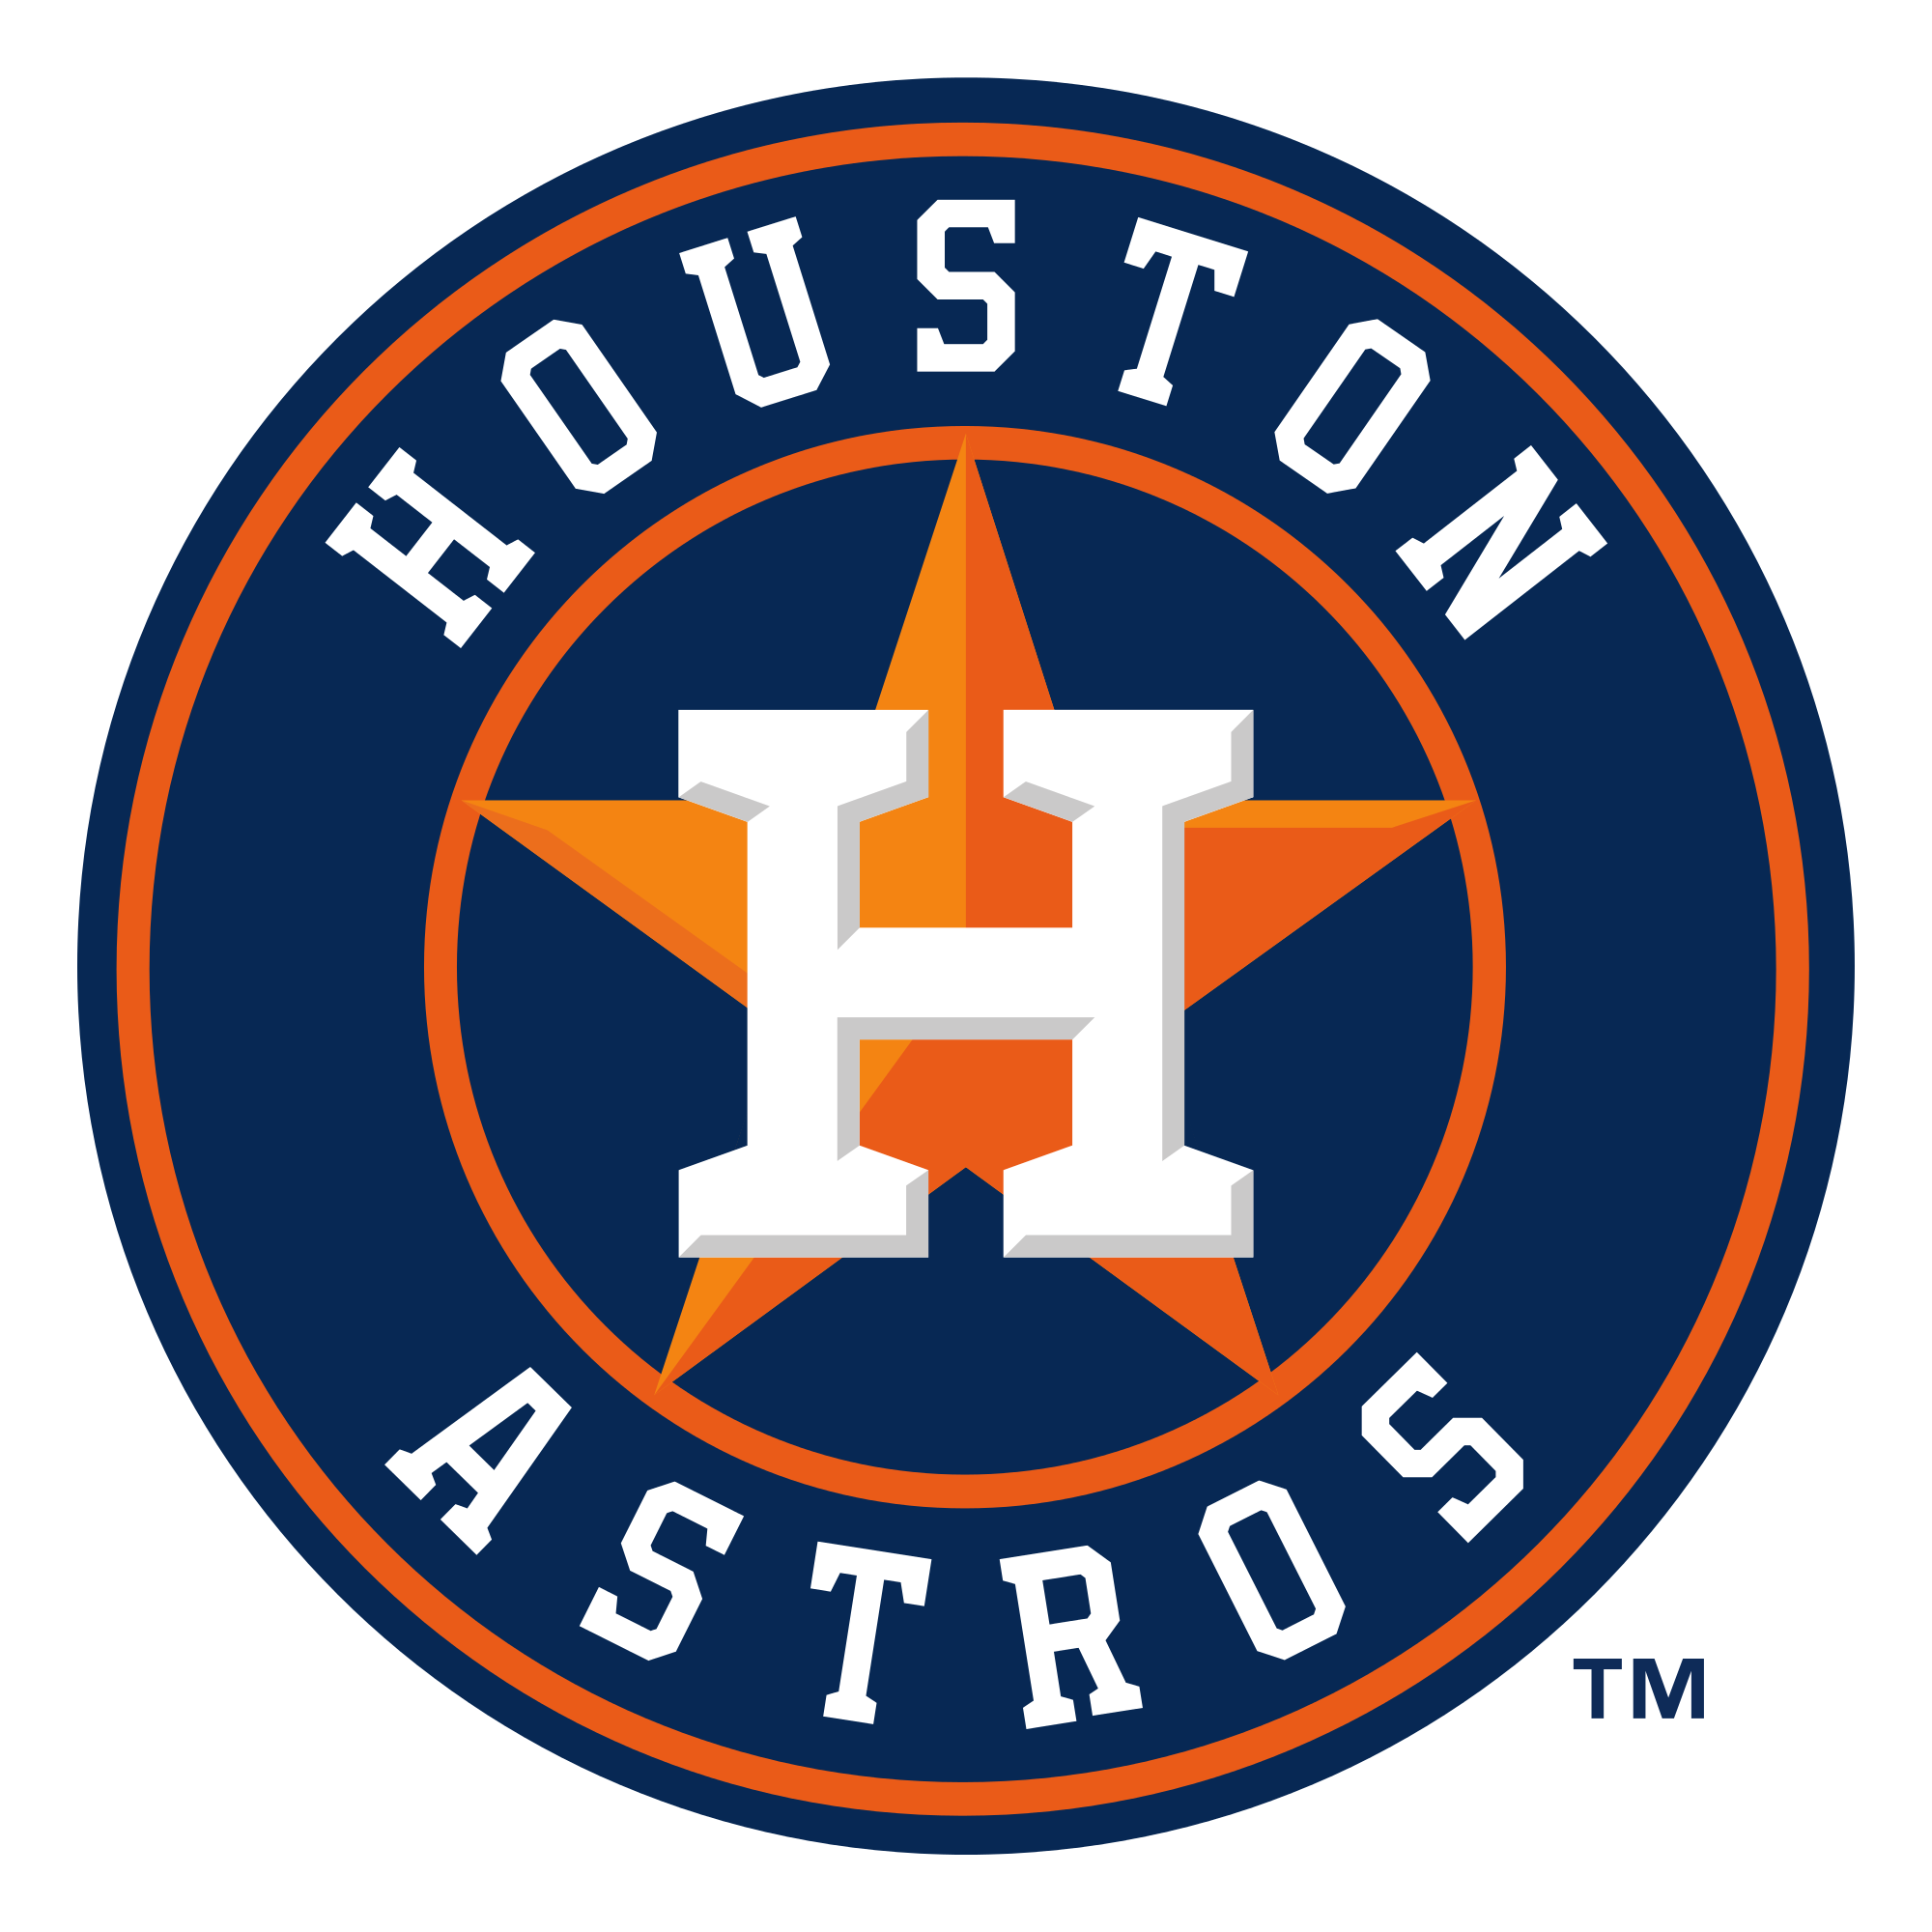 worksheet Gardening Merit Badge Worksheet scout days sam houston area council watch the astros 2017 world series champions take on kansas city royals families can participate in a pre game parade